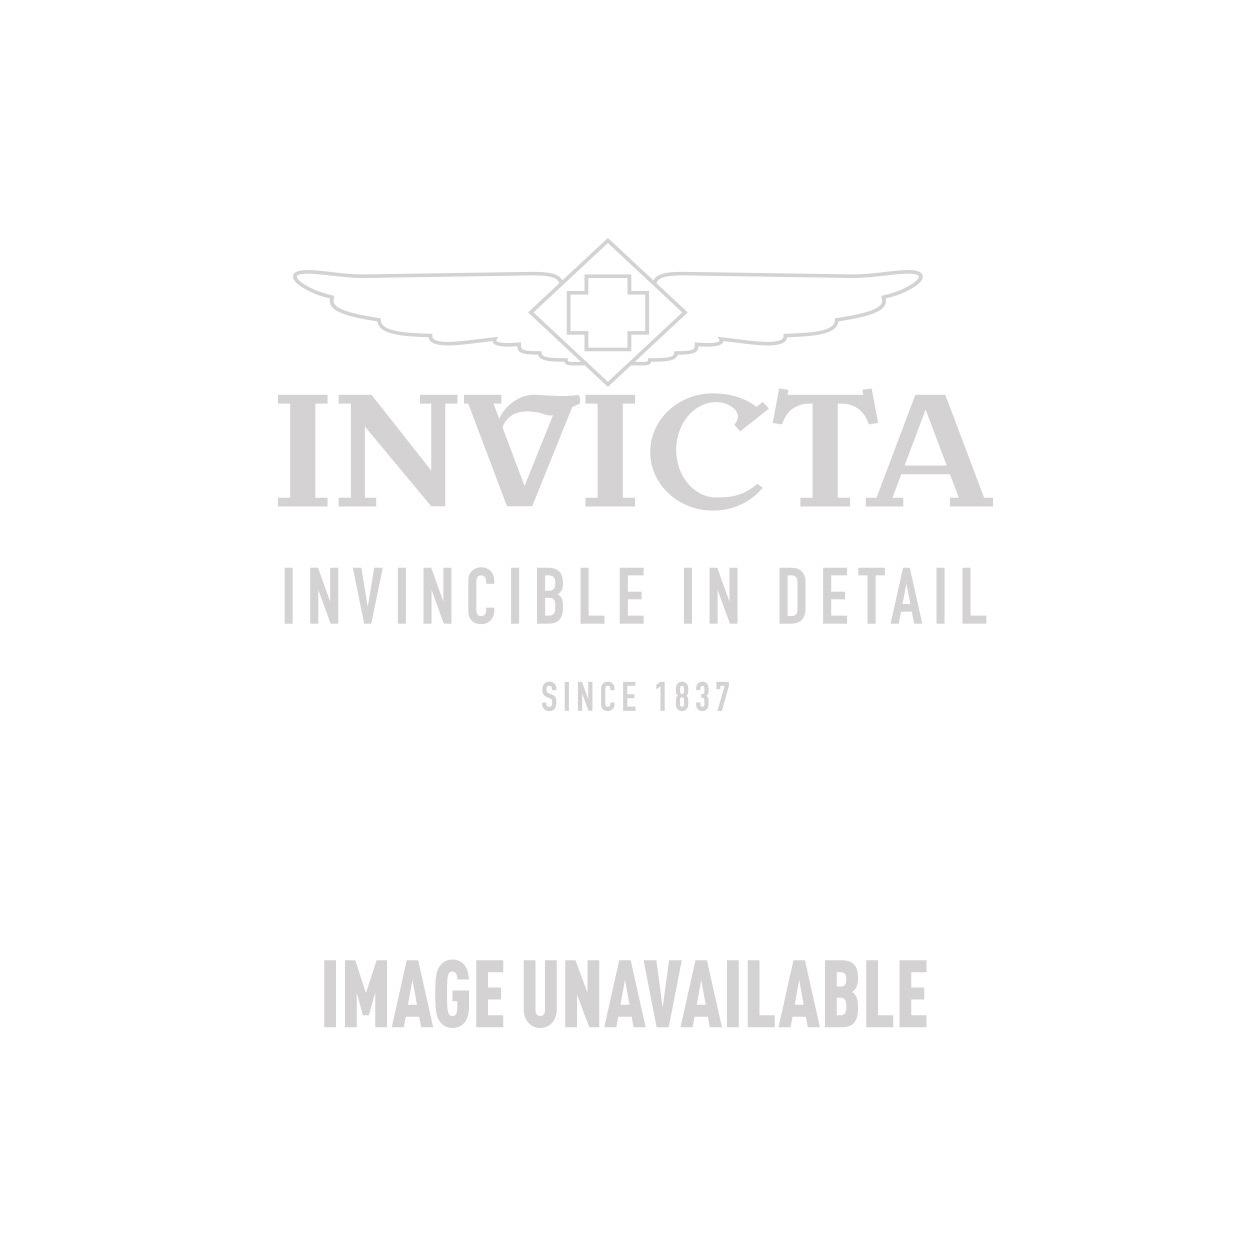 Invicta Speedway Swiss Movement Quartz Watch - Gold case with Gold tone Stainless Steel band - Model 14710